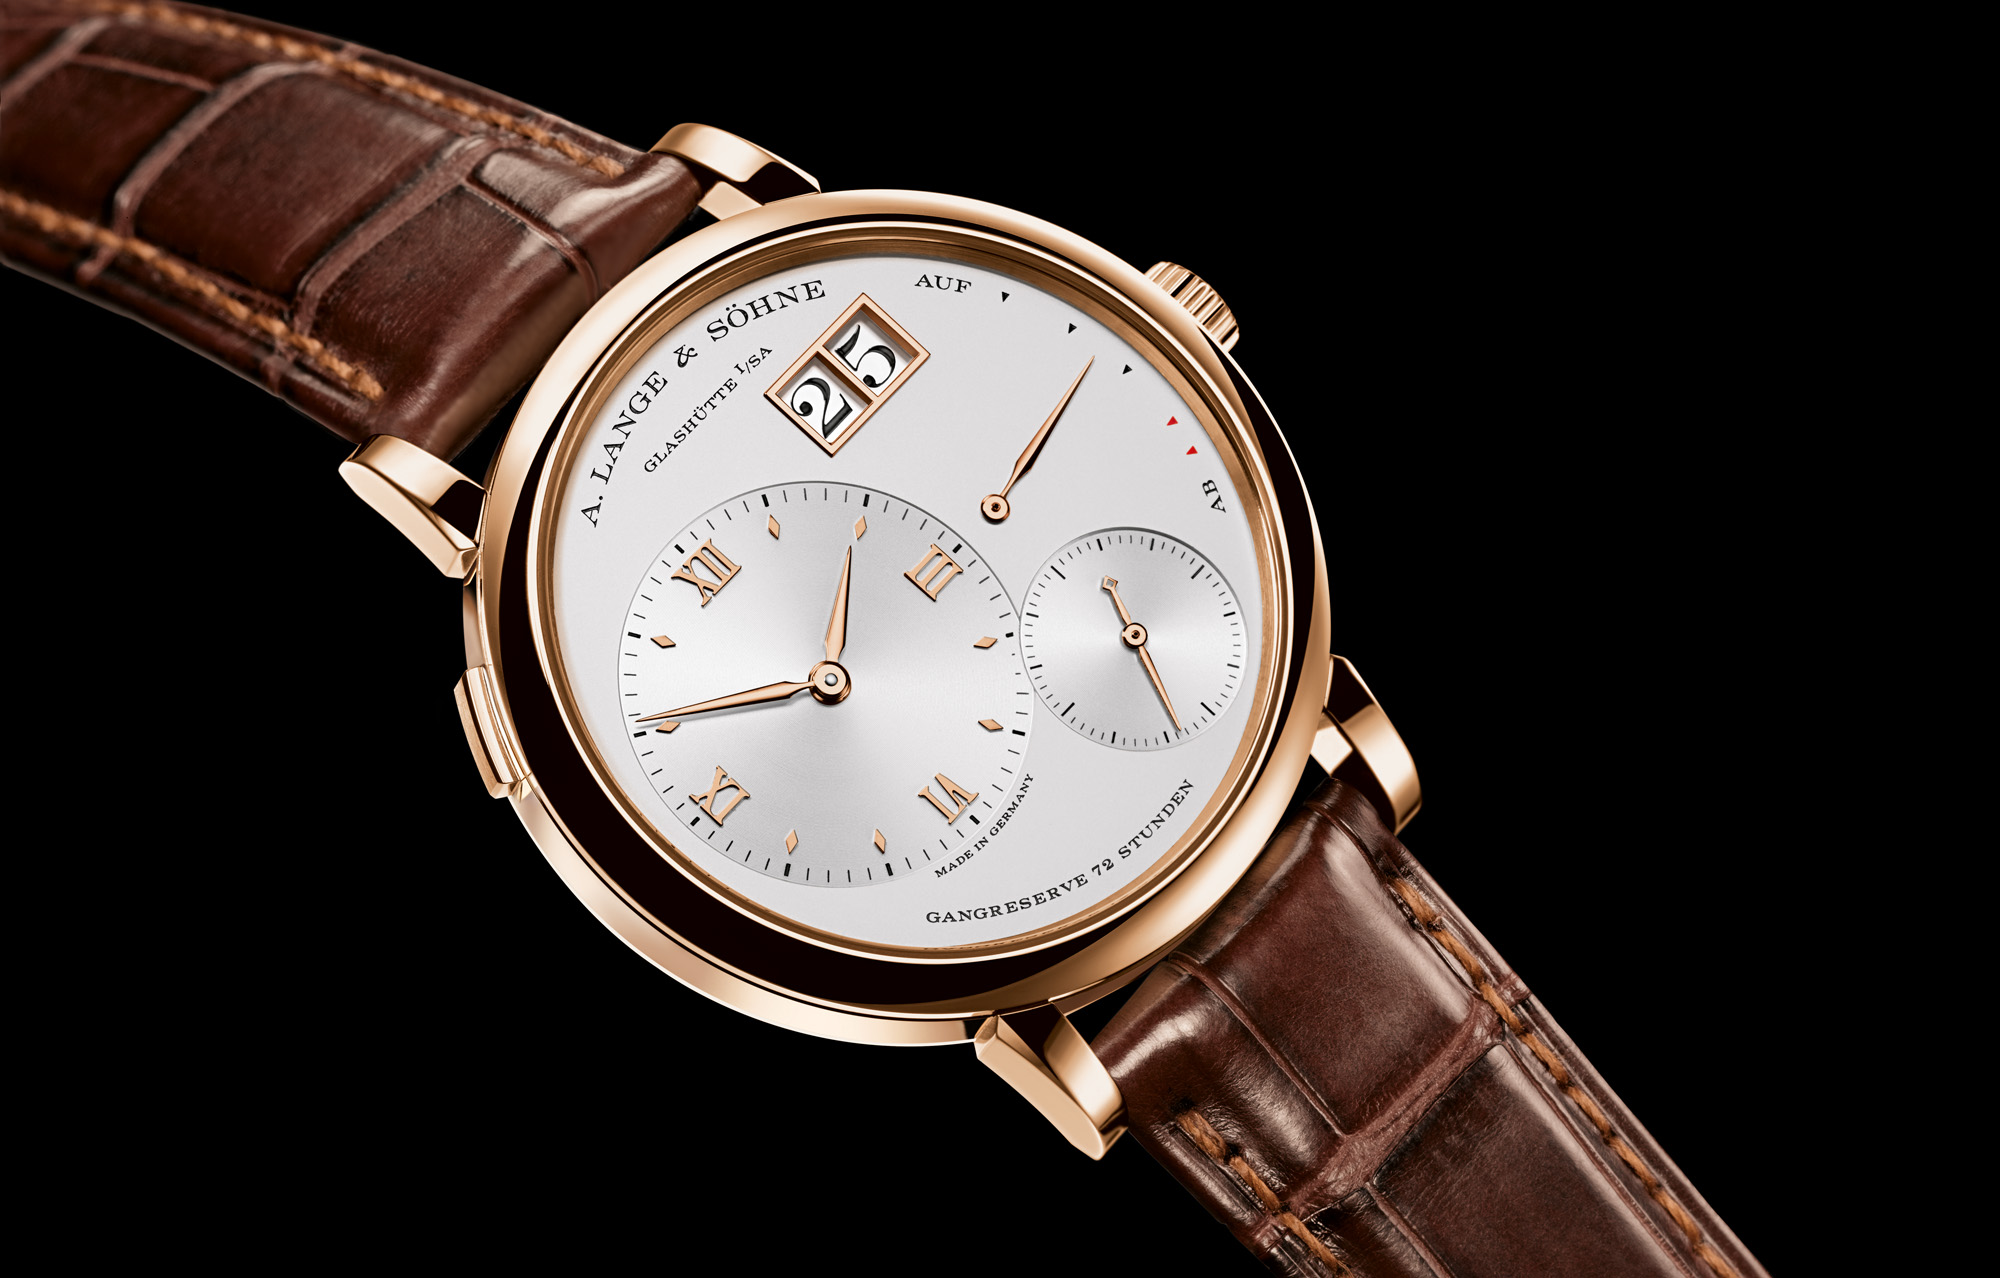 A.Lange & Sohne Grosse Lange Watch